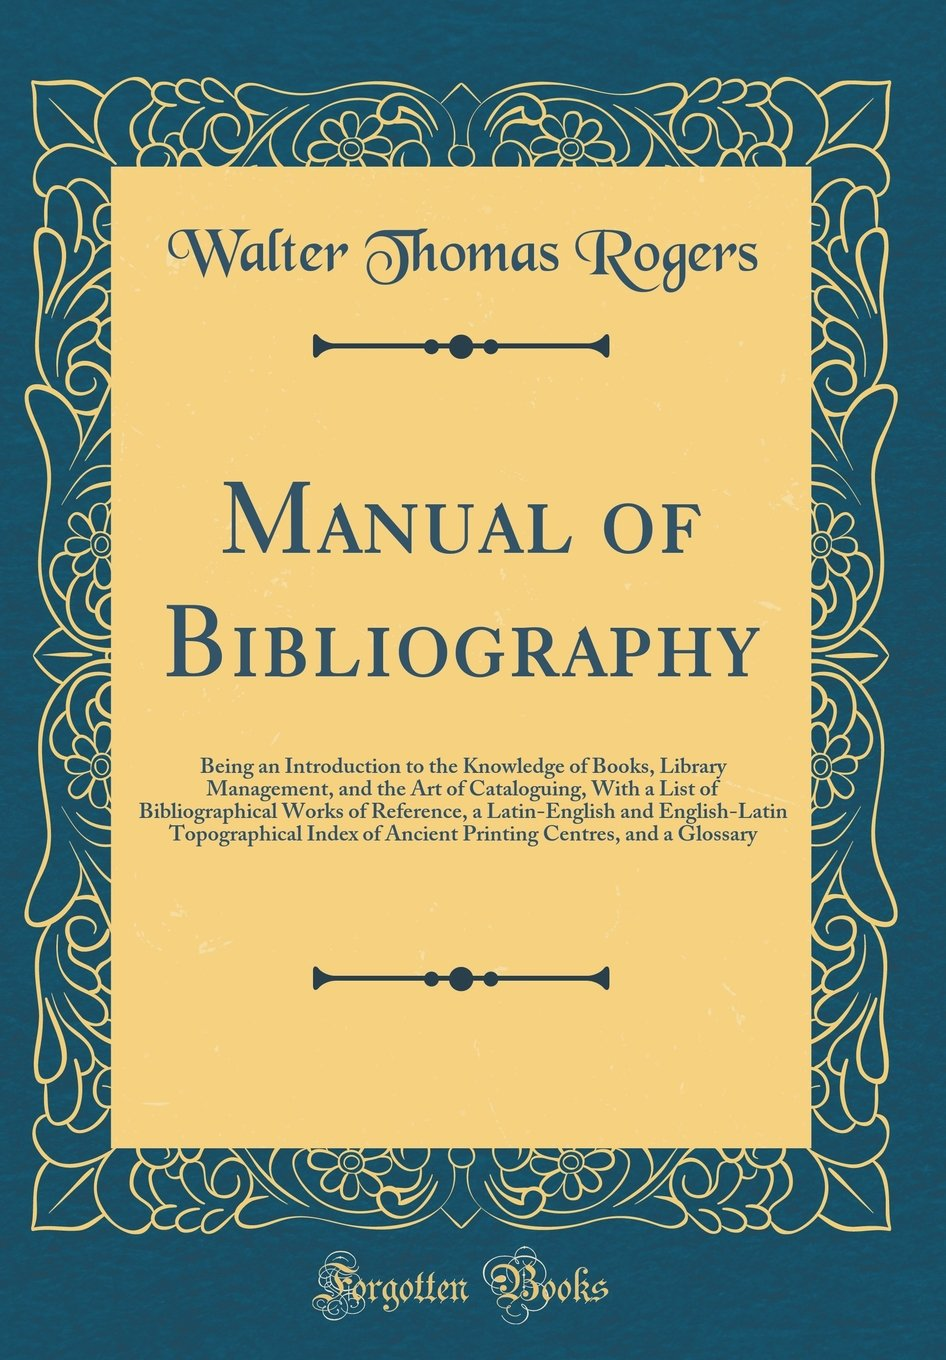 Manual of Bibliography: Being an Introduction to the Knowledge of Books, Library Management, and the Art of Cataloguing, with a List of ... Index of Ancient Printing Centres, ebook